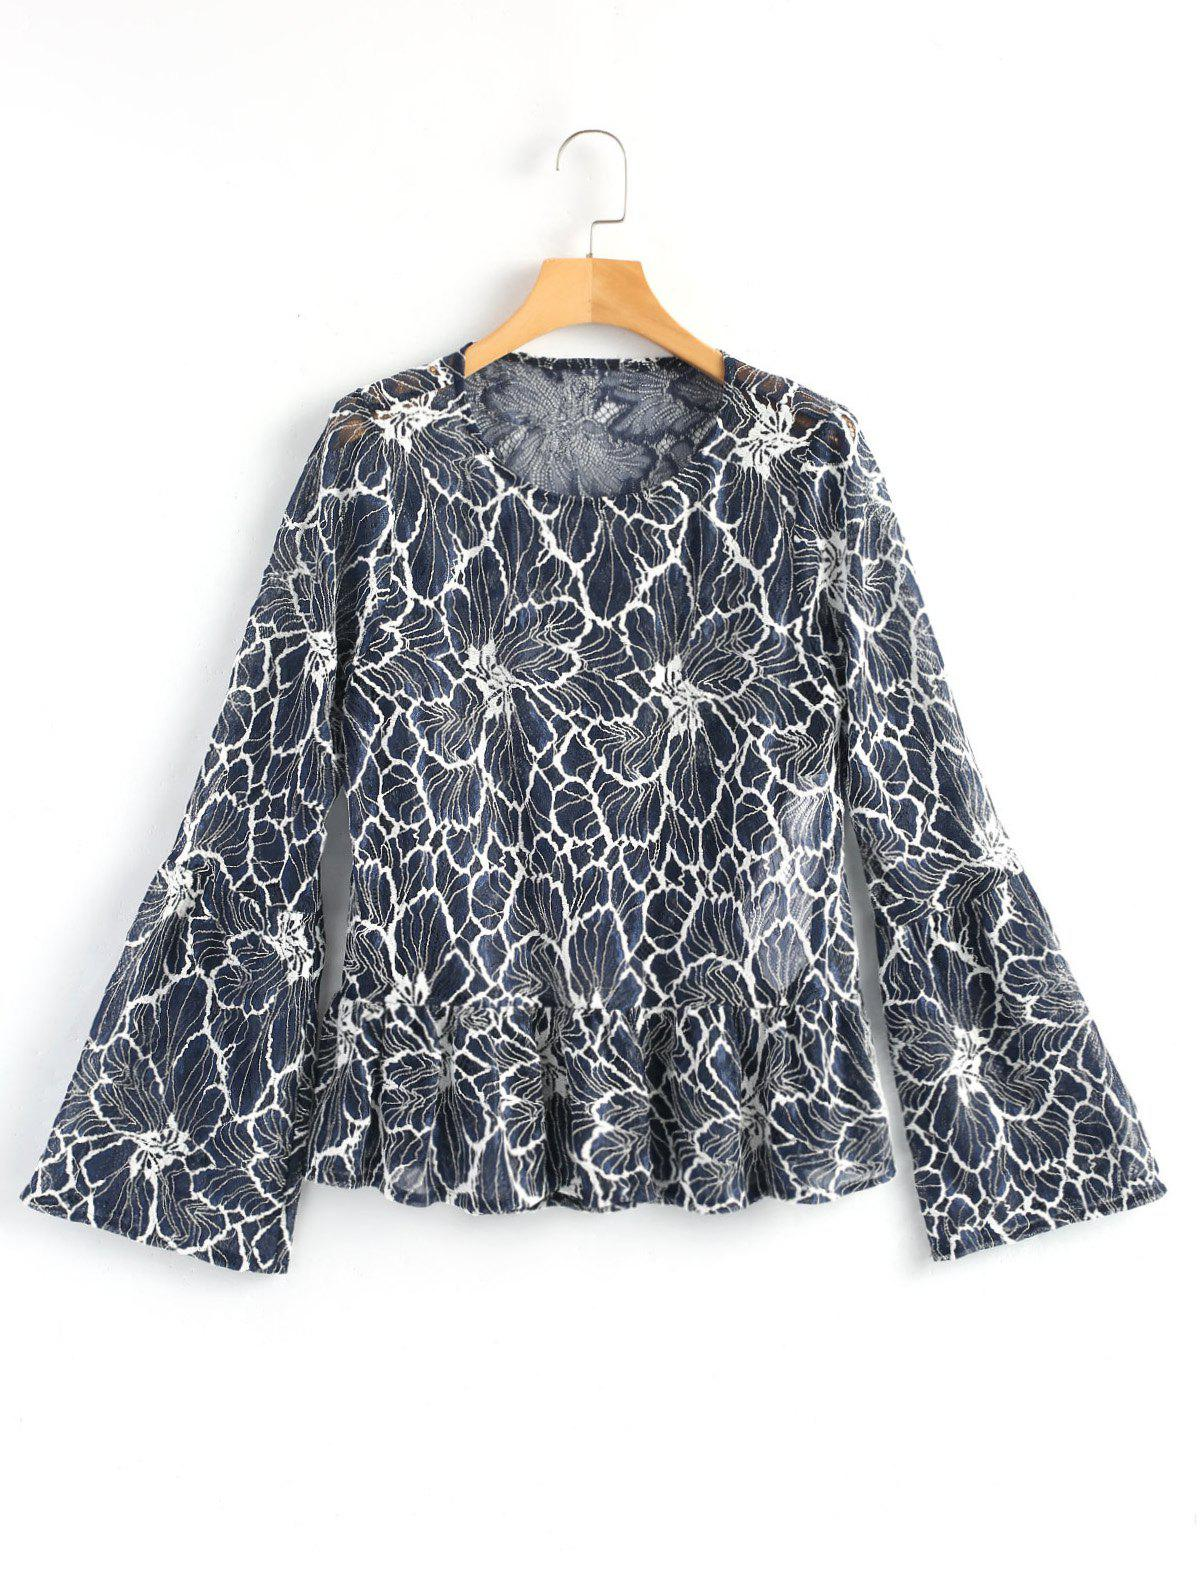 Long Bell Sleeve Sheer Lace Top, Blue and white